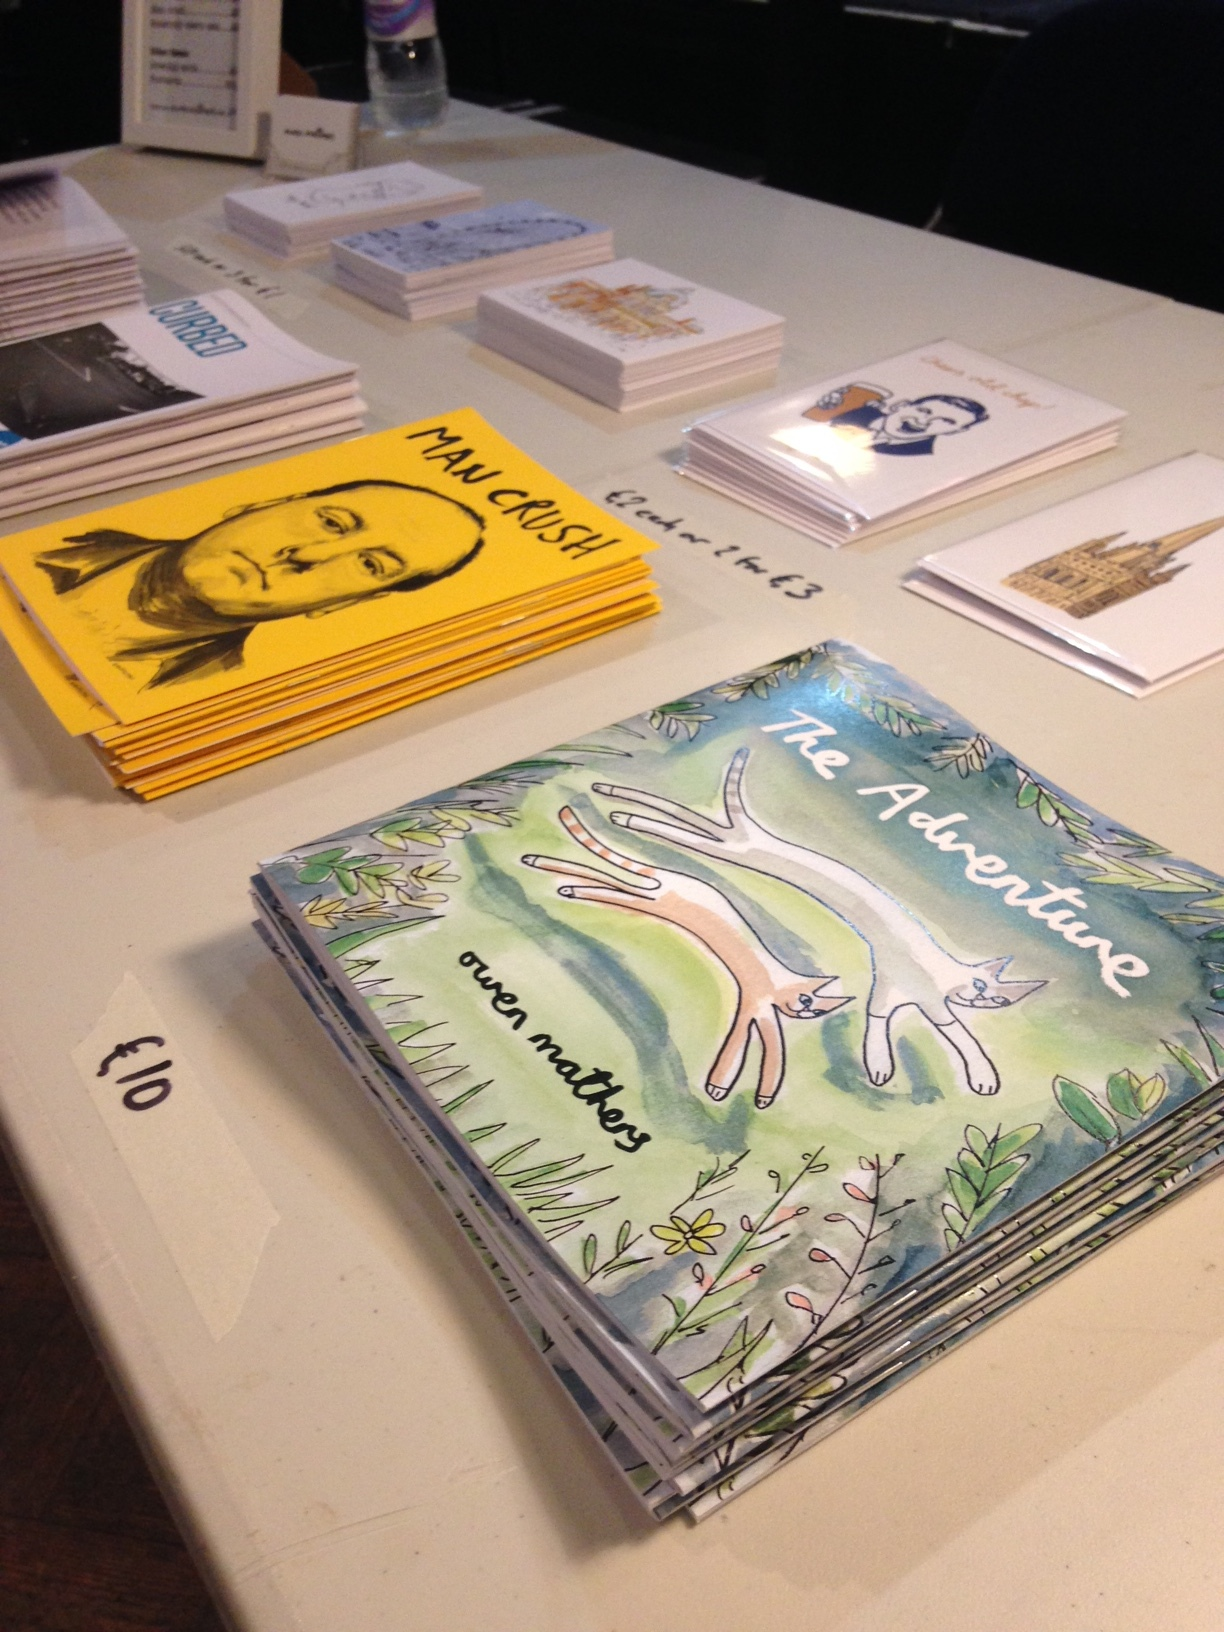 Zines, postcards and my picture book.